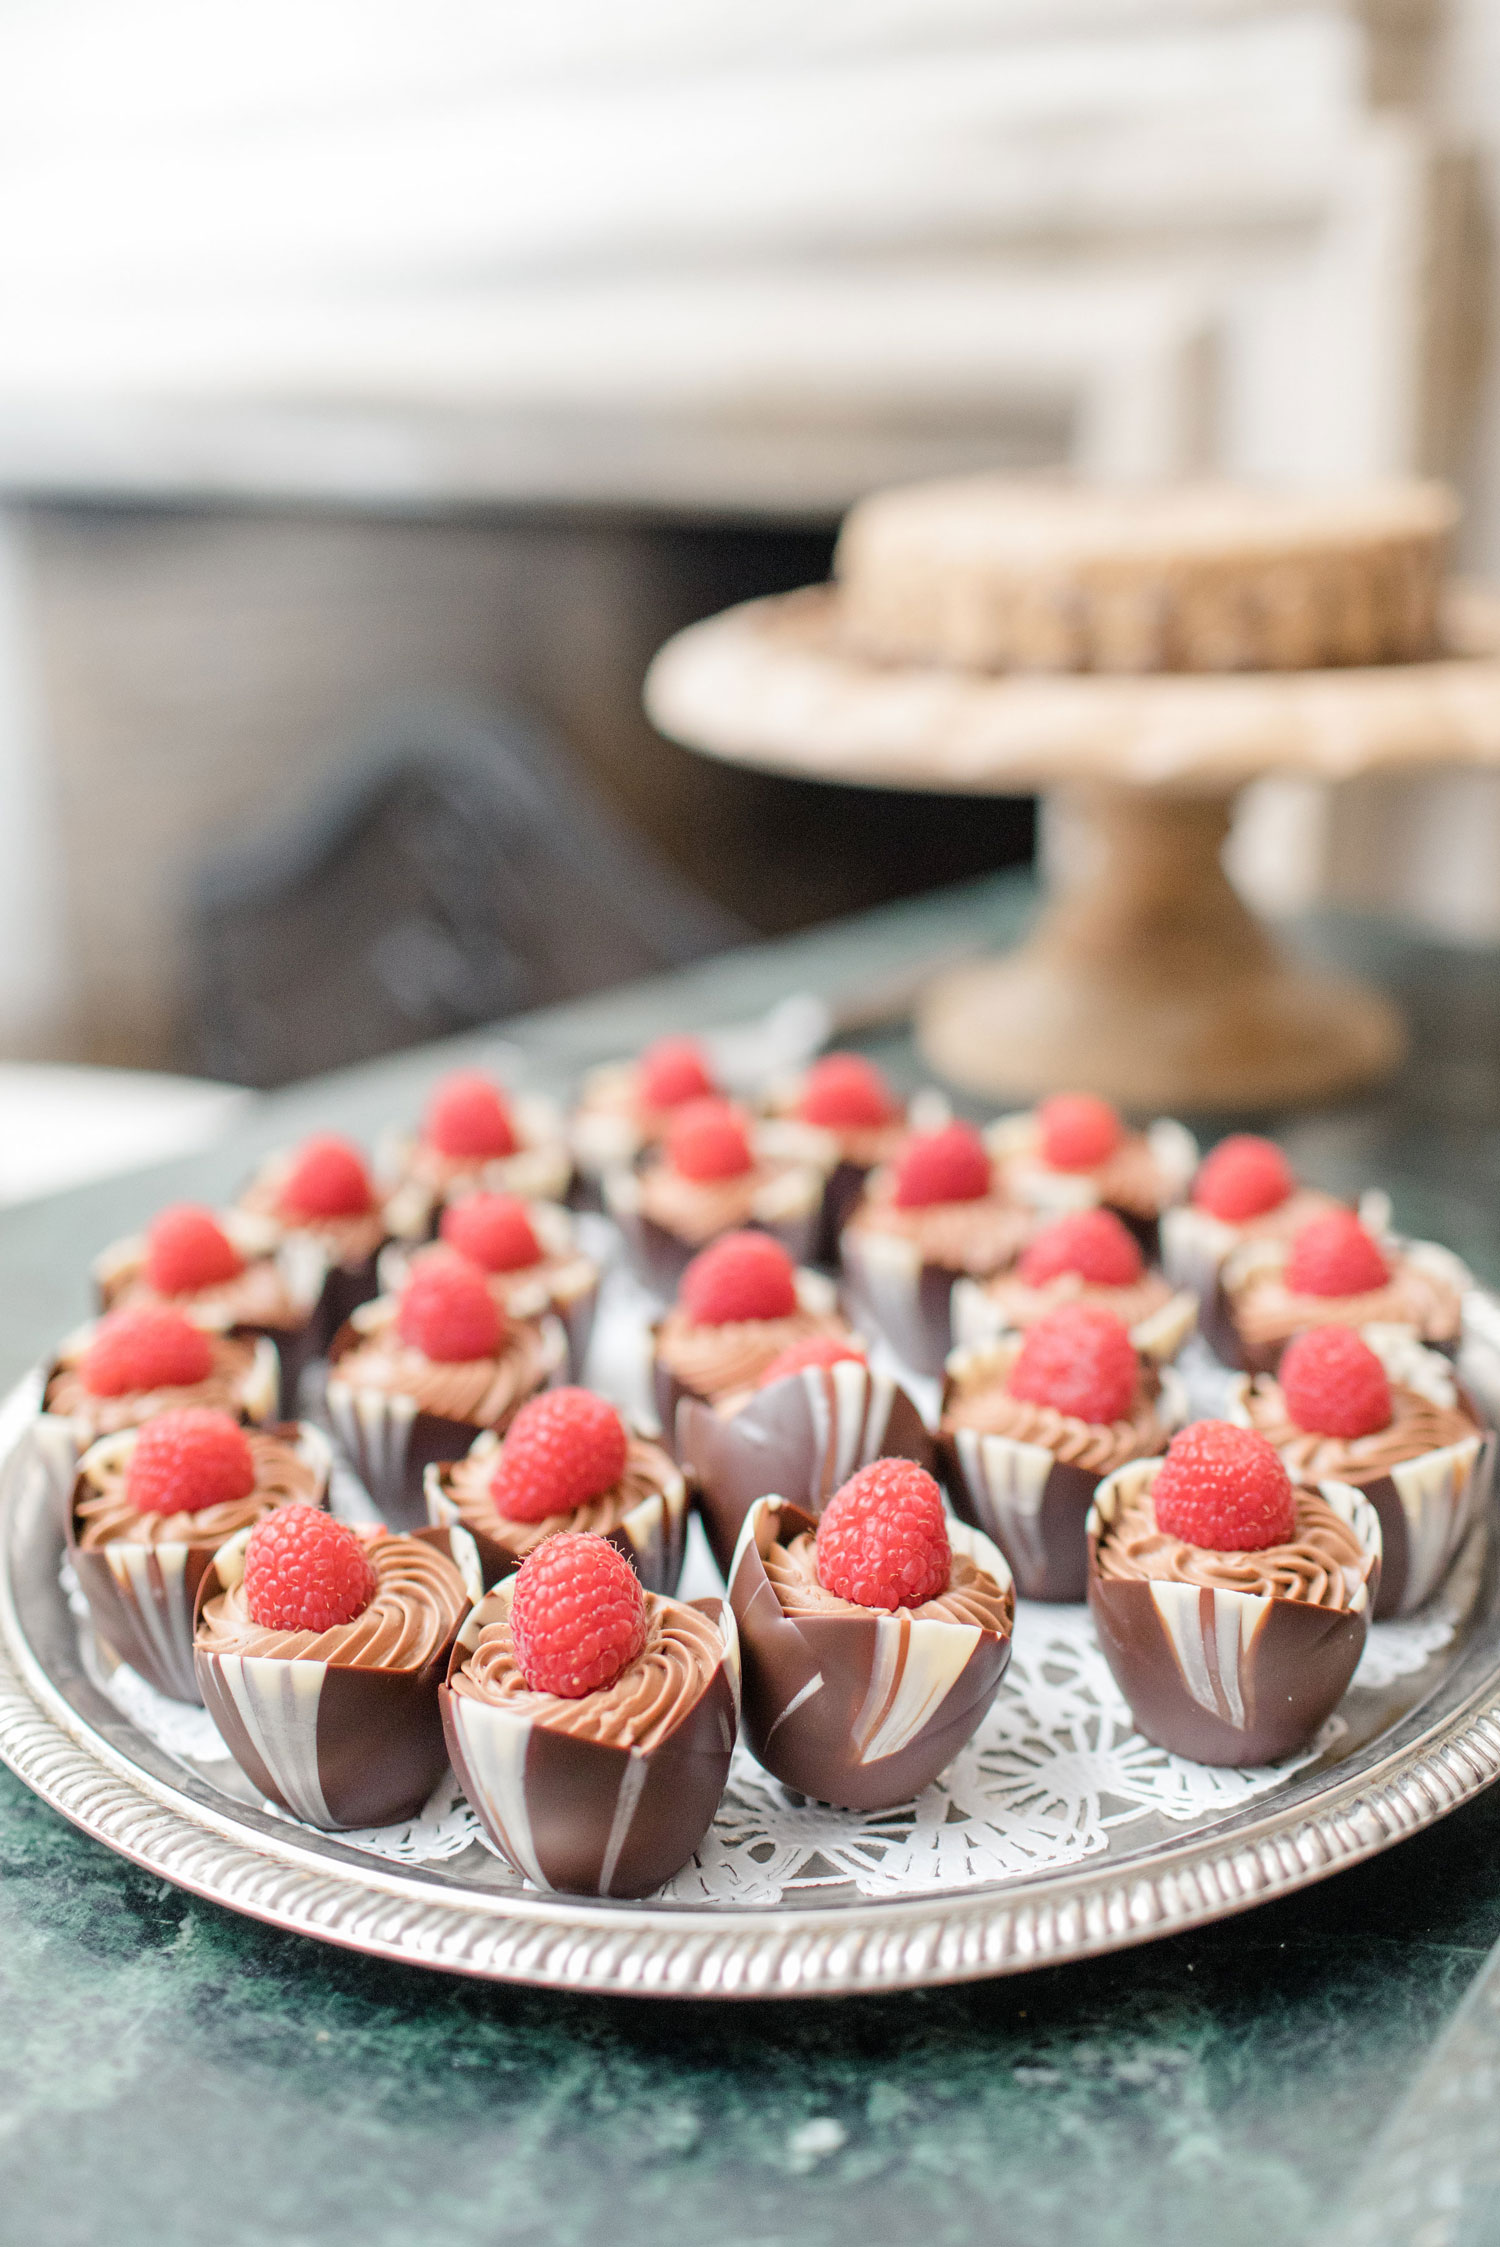 Chocolate Mousse recipe small bite summer party ideas entertaining tips wedding dessert options